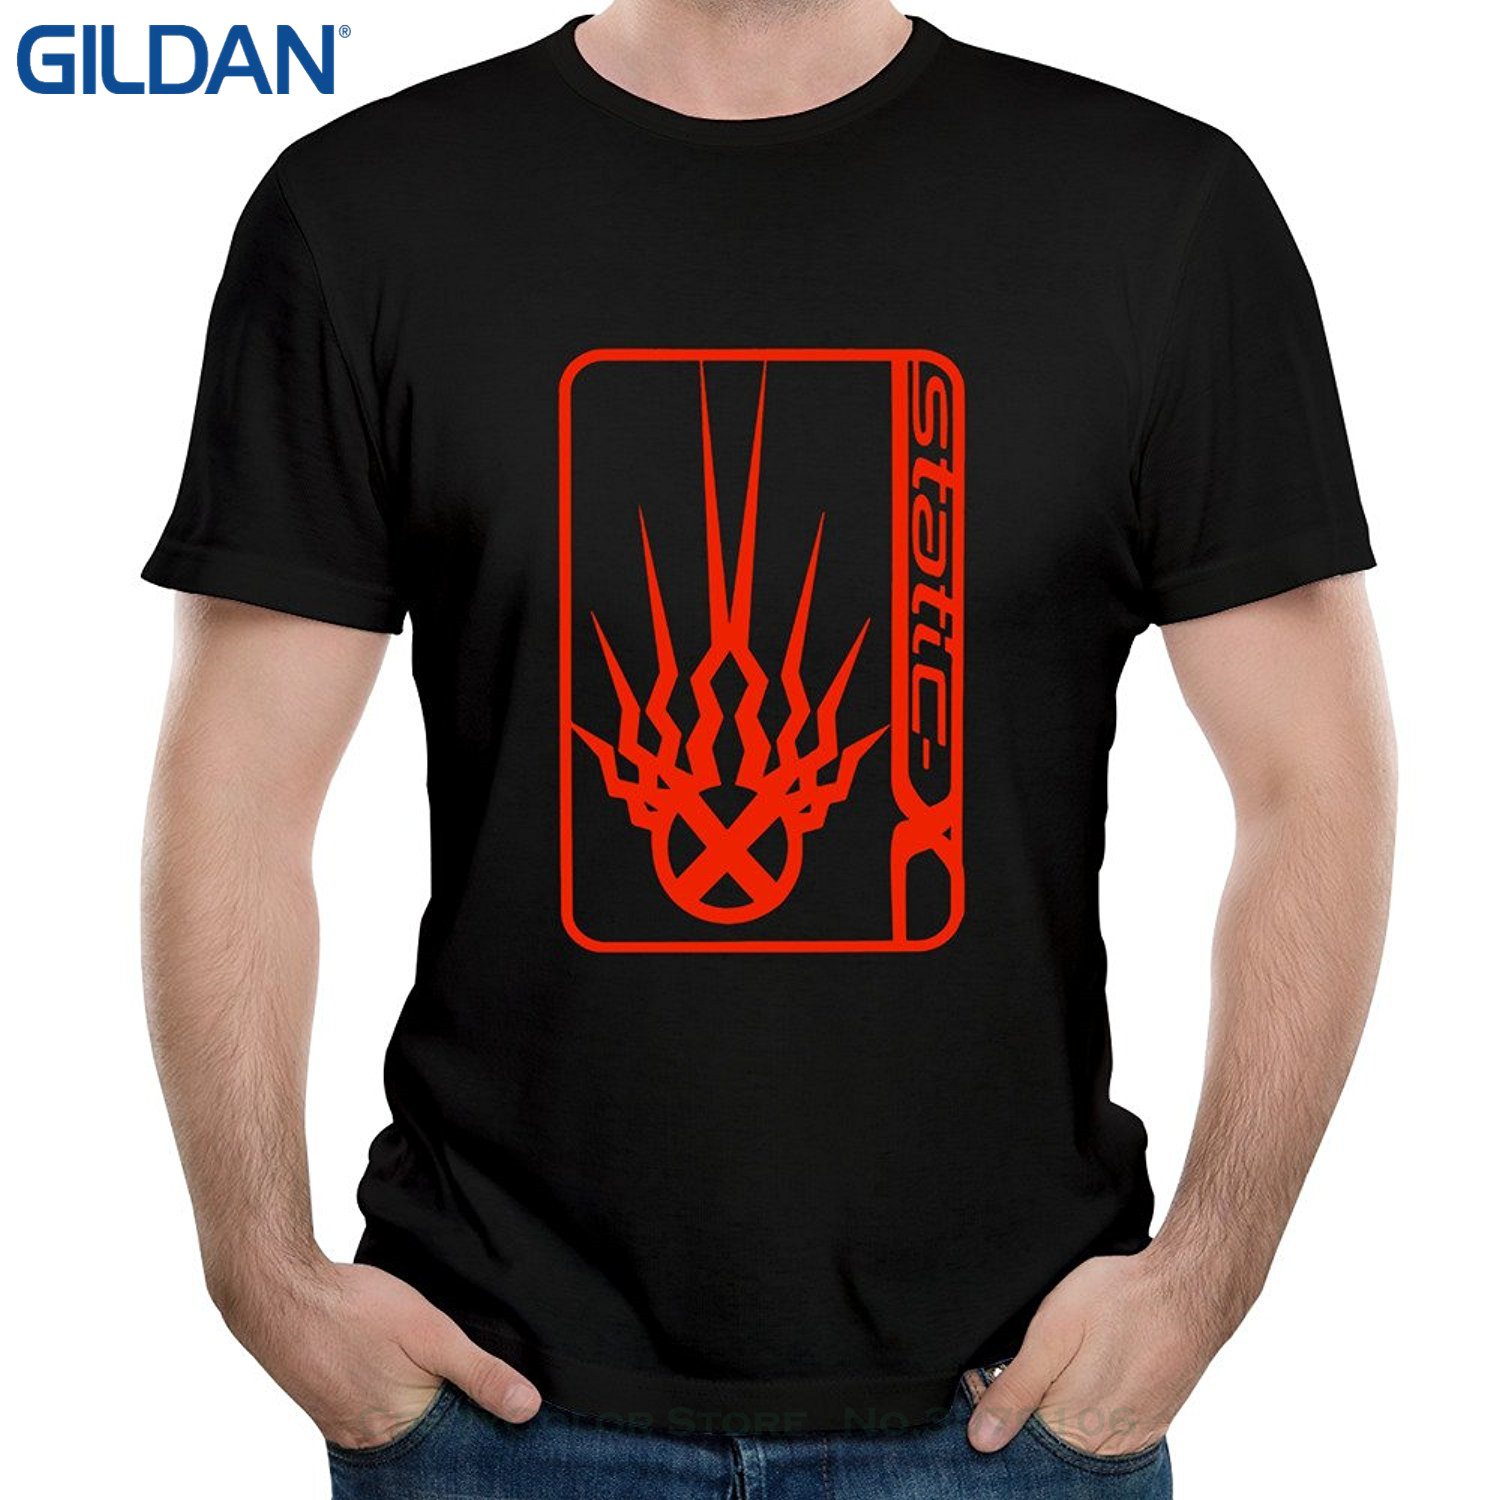 GILDAN Short Sleeve Round Neck T Shirt Promotion Mens Static X Nu Metal Push It Short Sl ...